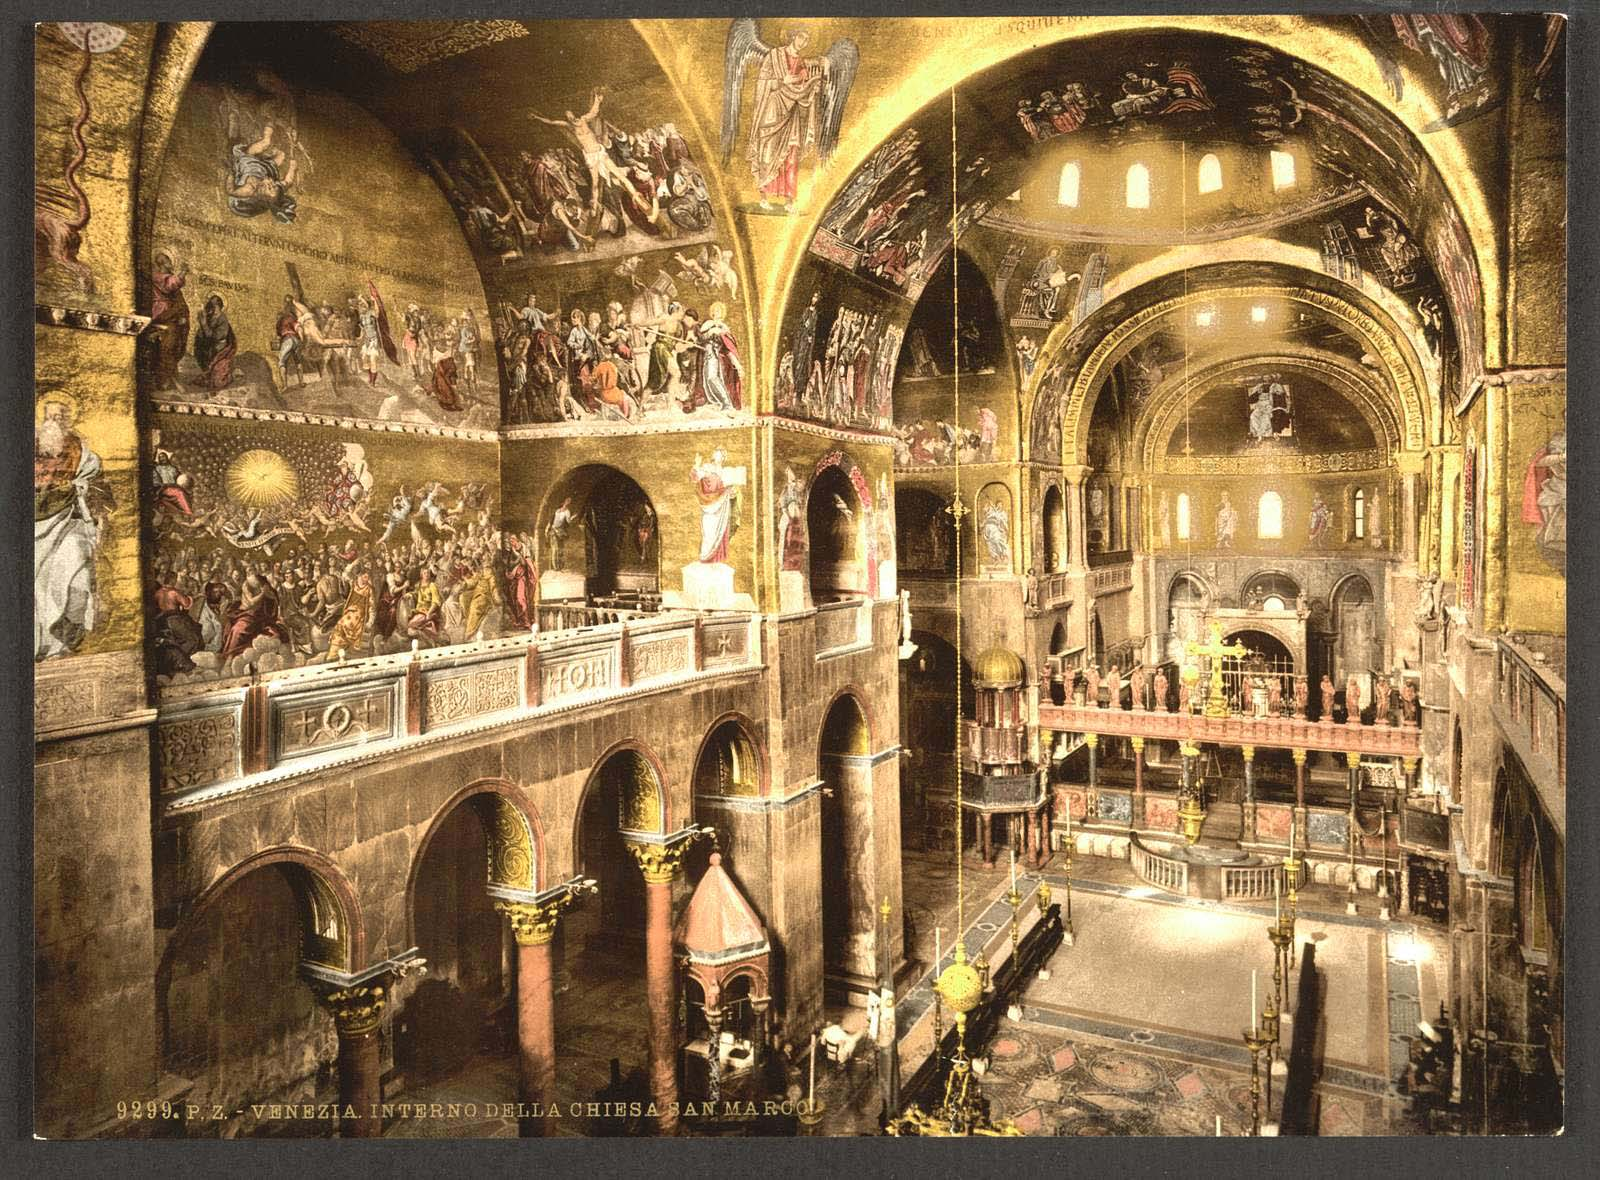 venice-in-beautiful-old-color-images-1890_22.jpg